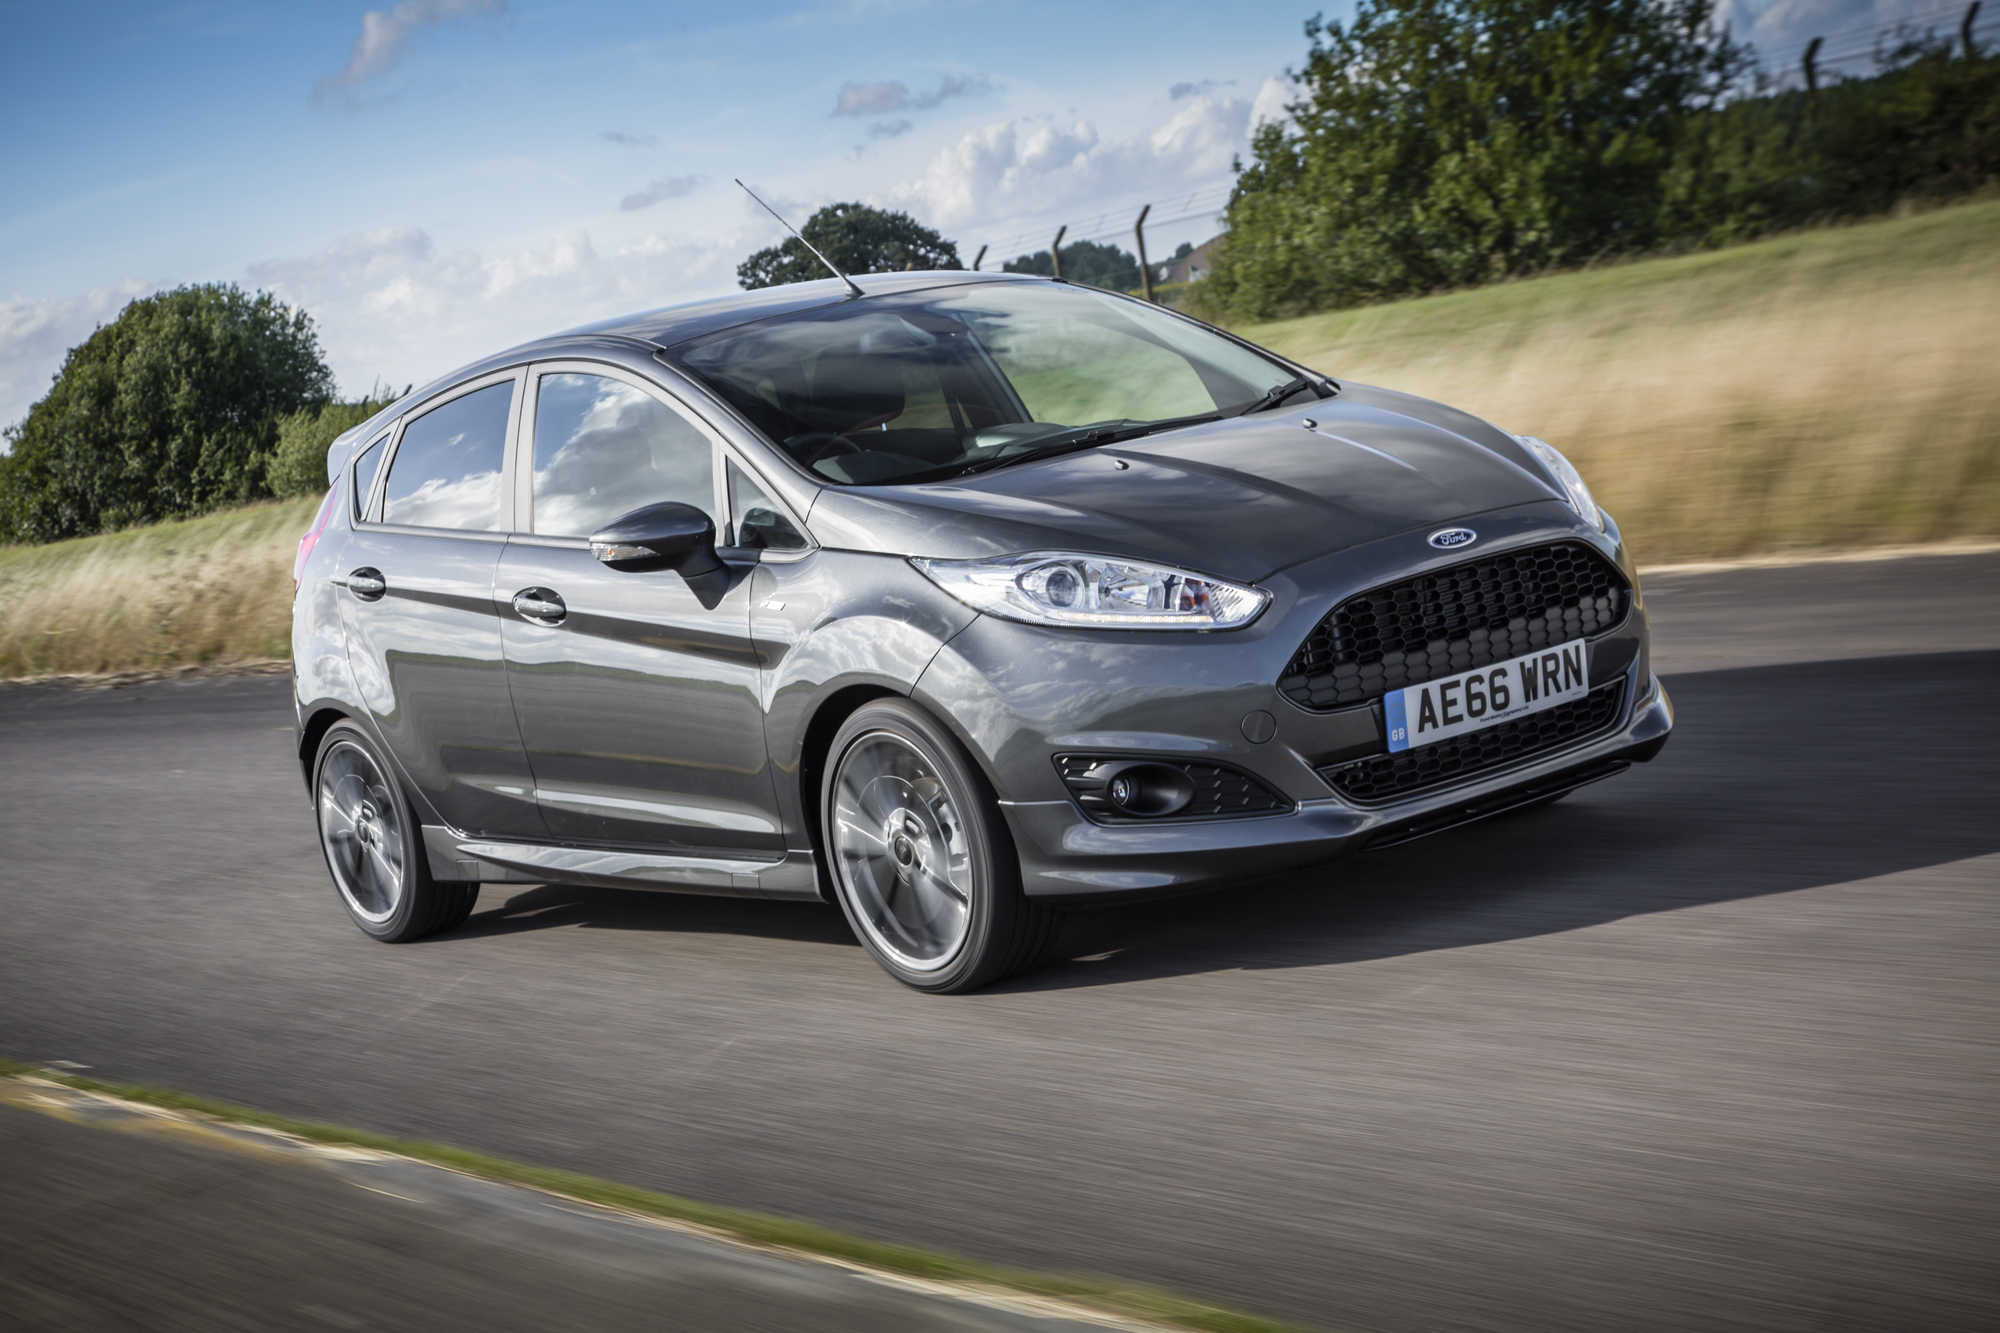 ford fiesta st line 1 0 litre ecoboost 140 review car keys. Black Bedroom Furniture Sets. Home Design Ideas